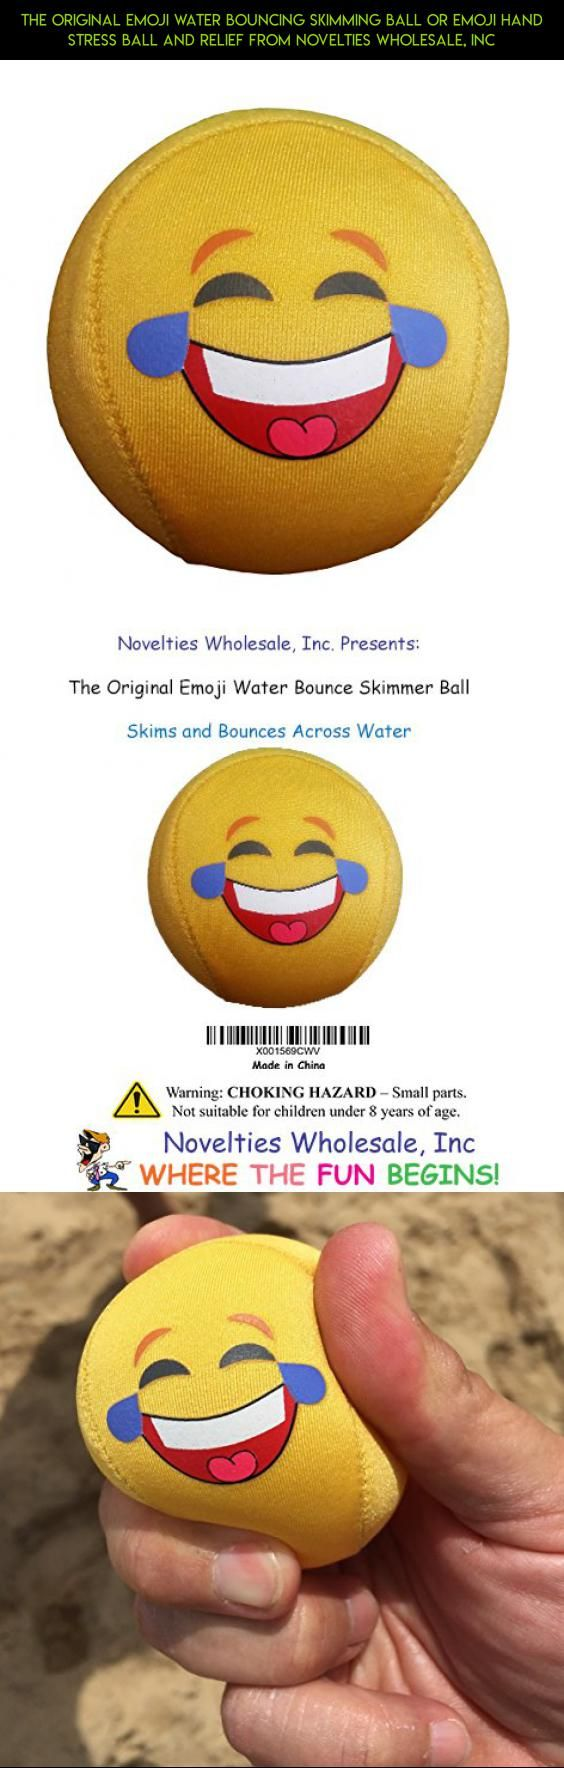 The Original Emoji Water Bouncing Skimming Ball or Emoji Hand Stress Ball and Relief from Novelties Wholesale, Inc #parts #products #camera #racing #shopping #tech #fpv #technology #cube #kit #fidget #plans #drone #emoji #gadgets